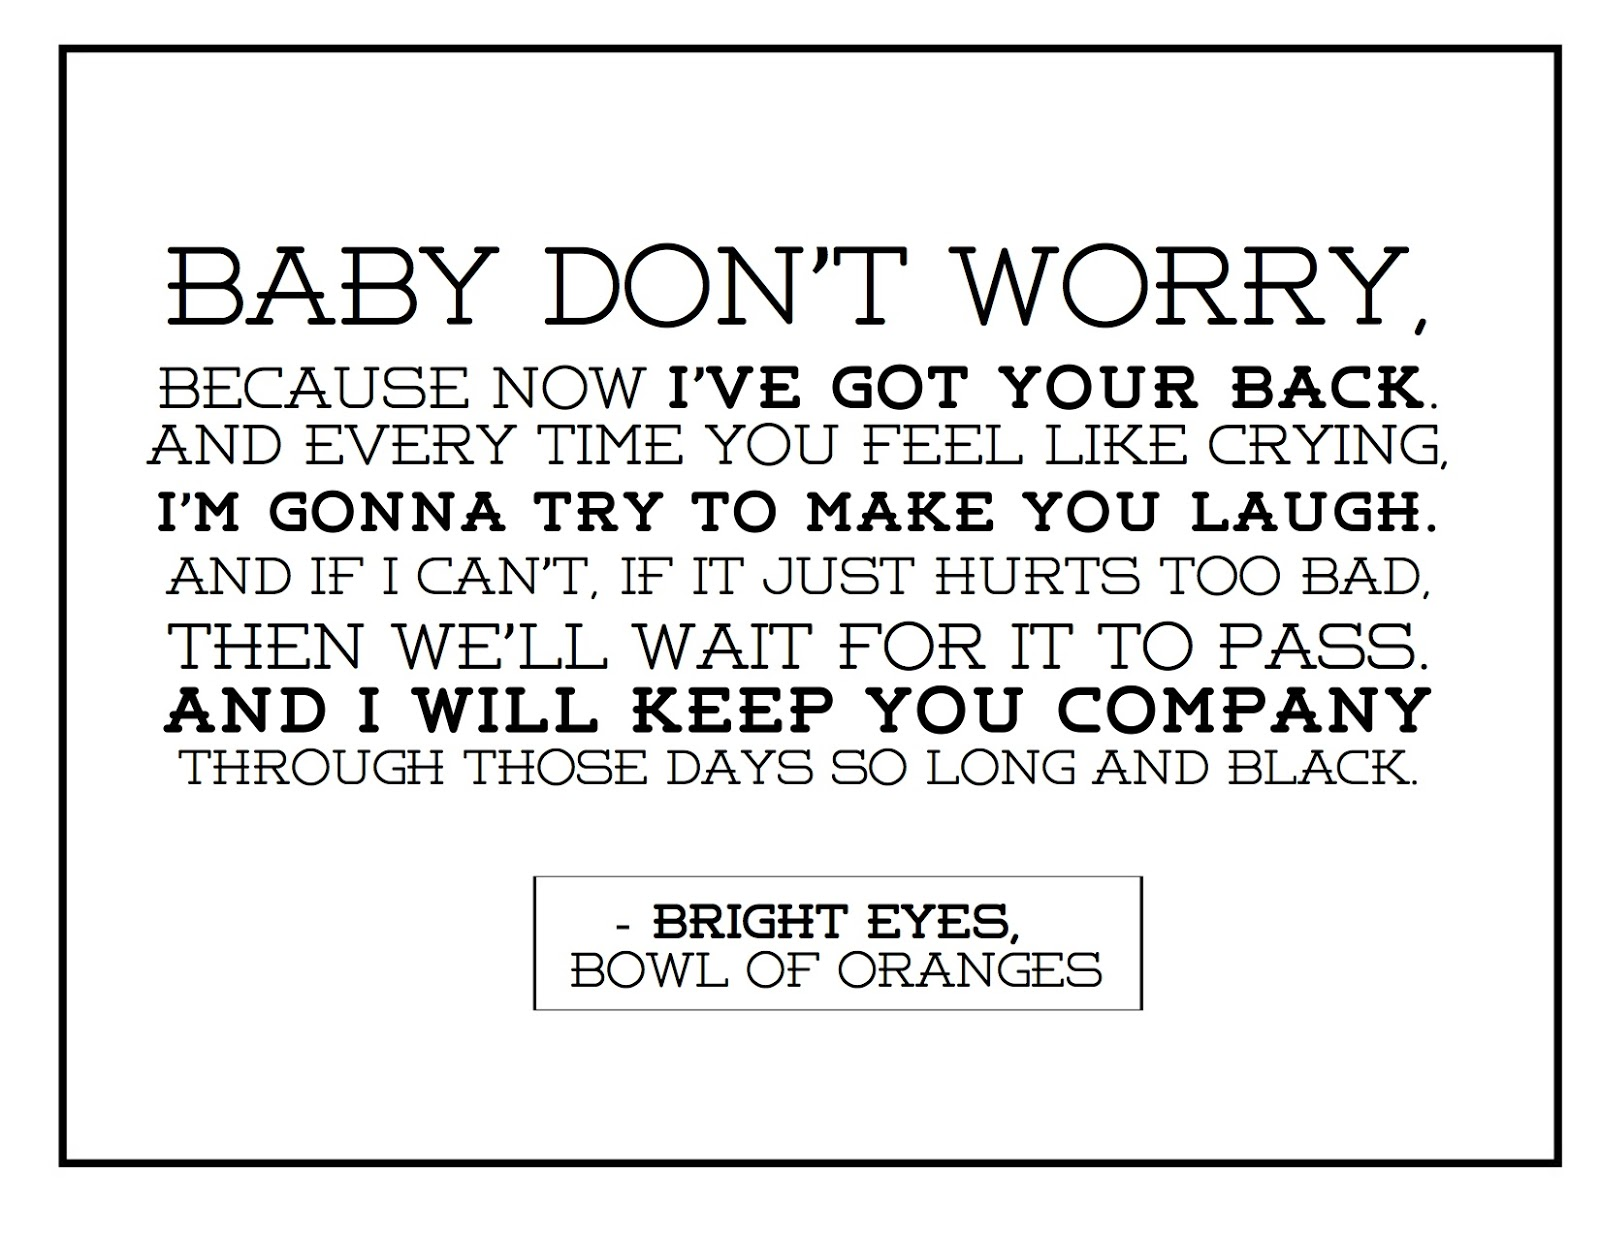 Sad Bright Eyes Quotes Bright eyes quotes about love quotesgram